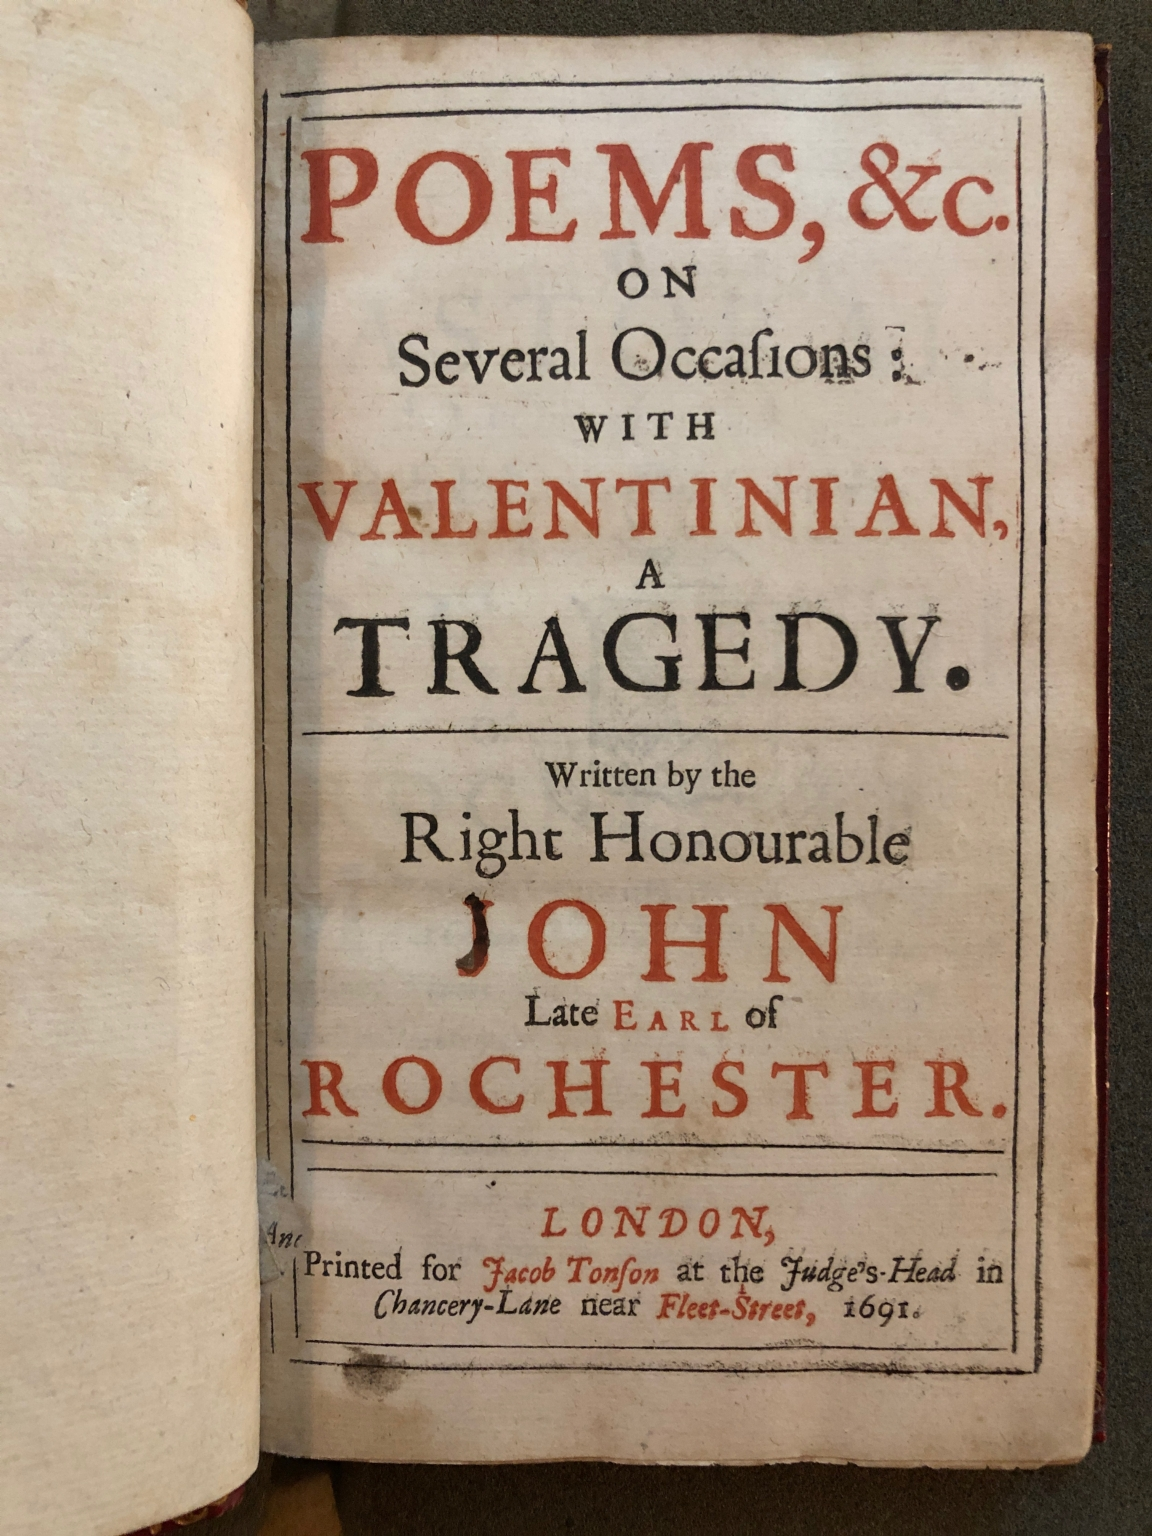 Poems, &c. on several occasions : with Valentinian, a tragedy. Written by the Right Honourable John late Earl of Rochester.